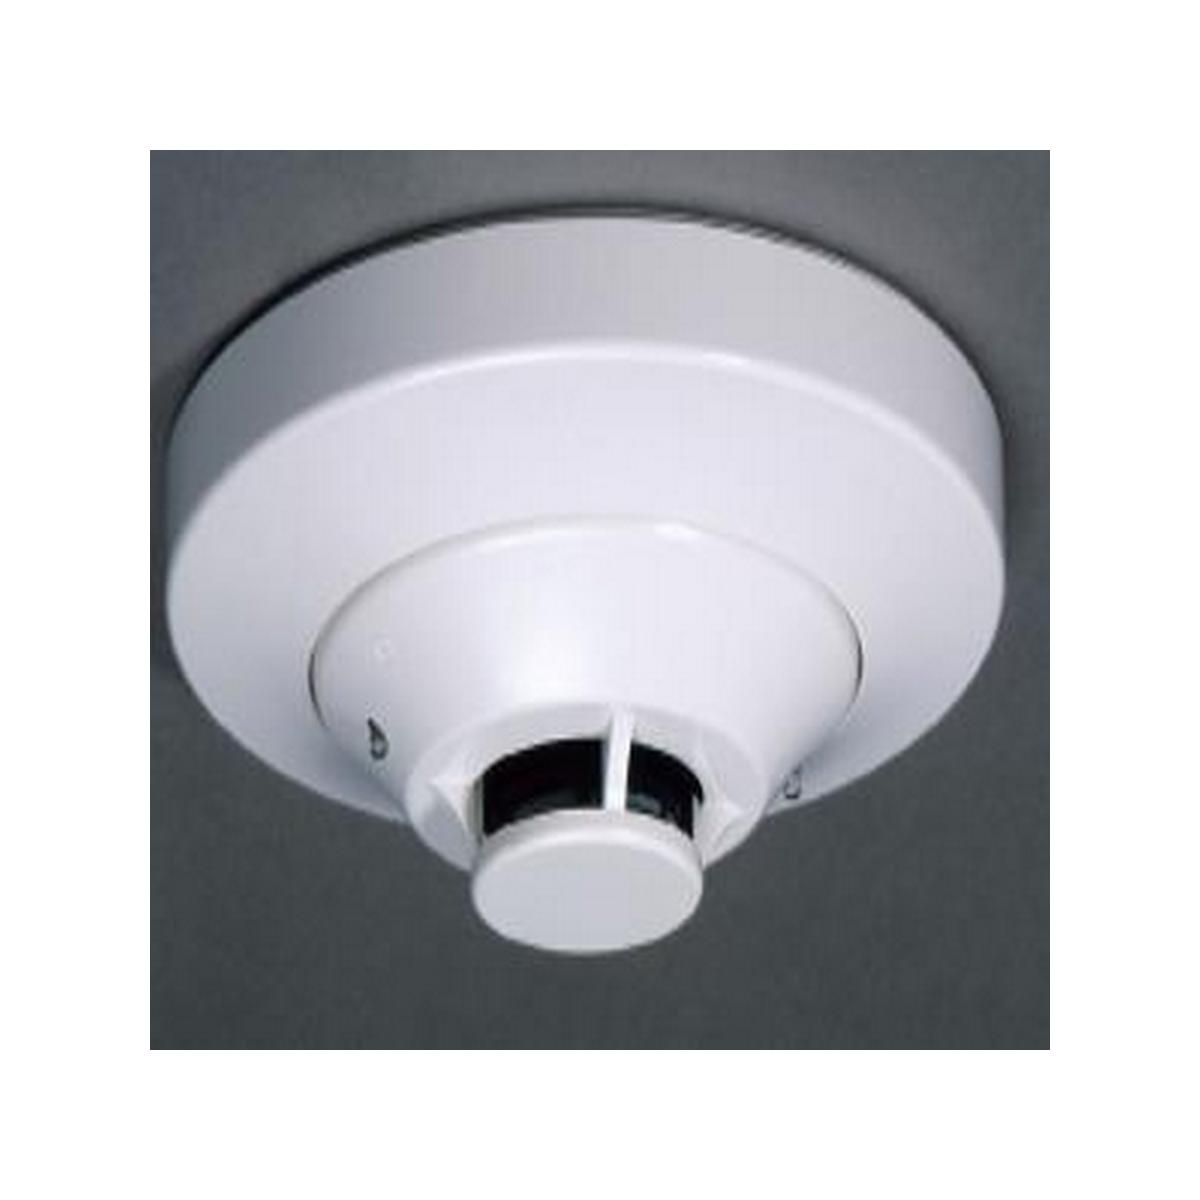 Firelite SD-355T  Addressable smoke detector, w/ thermal